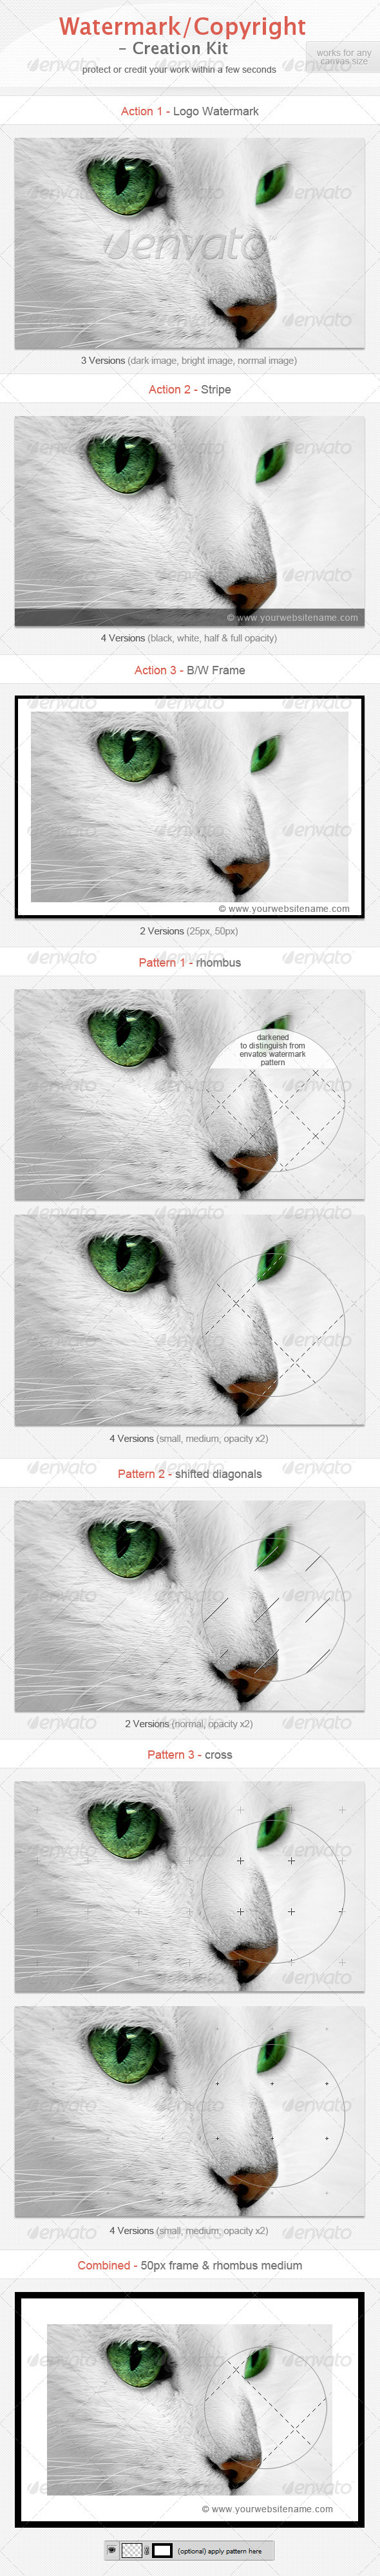 GraphicRiver Watermark Copyright Creation Kit 2416316